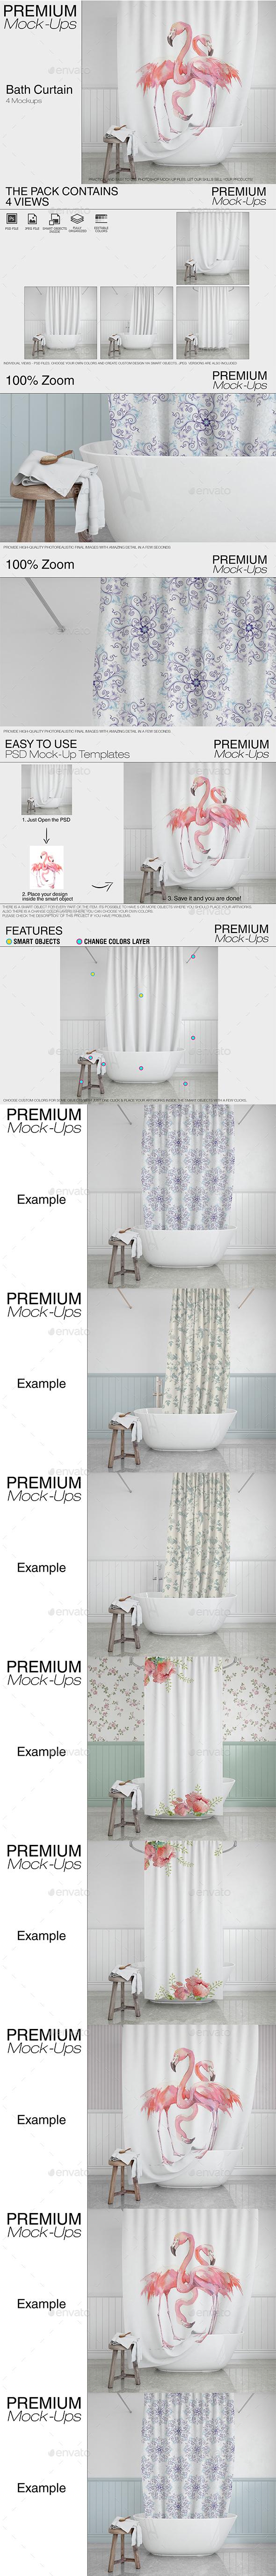 Bath Curtain Mockup Pack - Print Product Mock-Ups